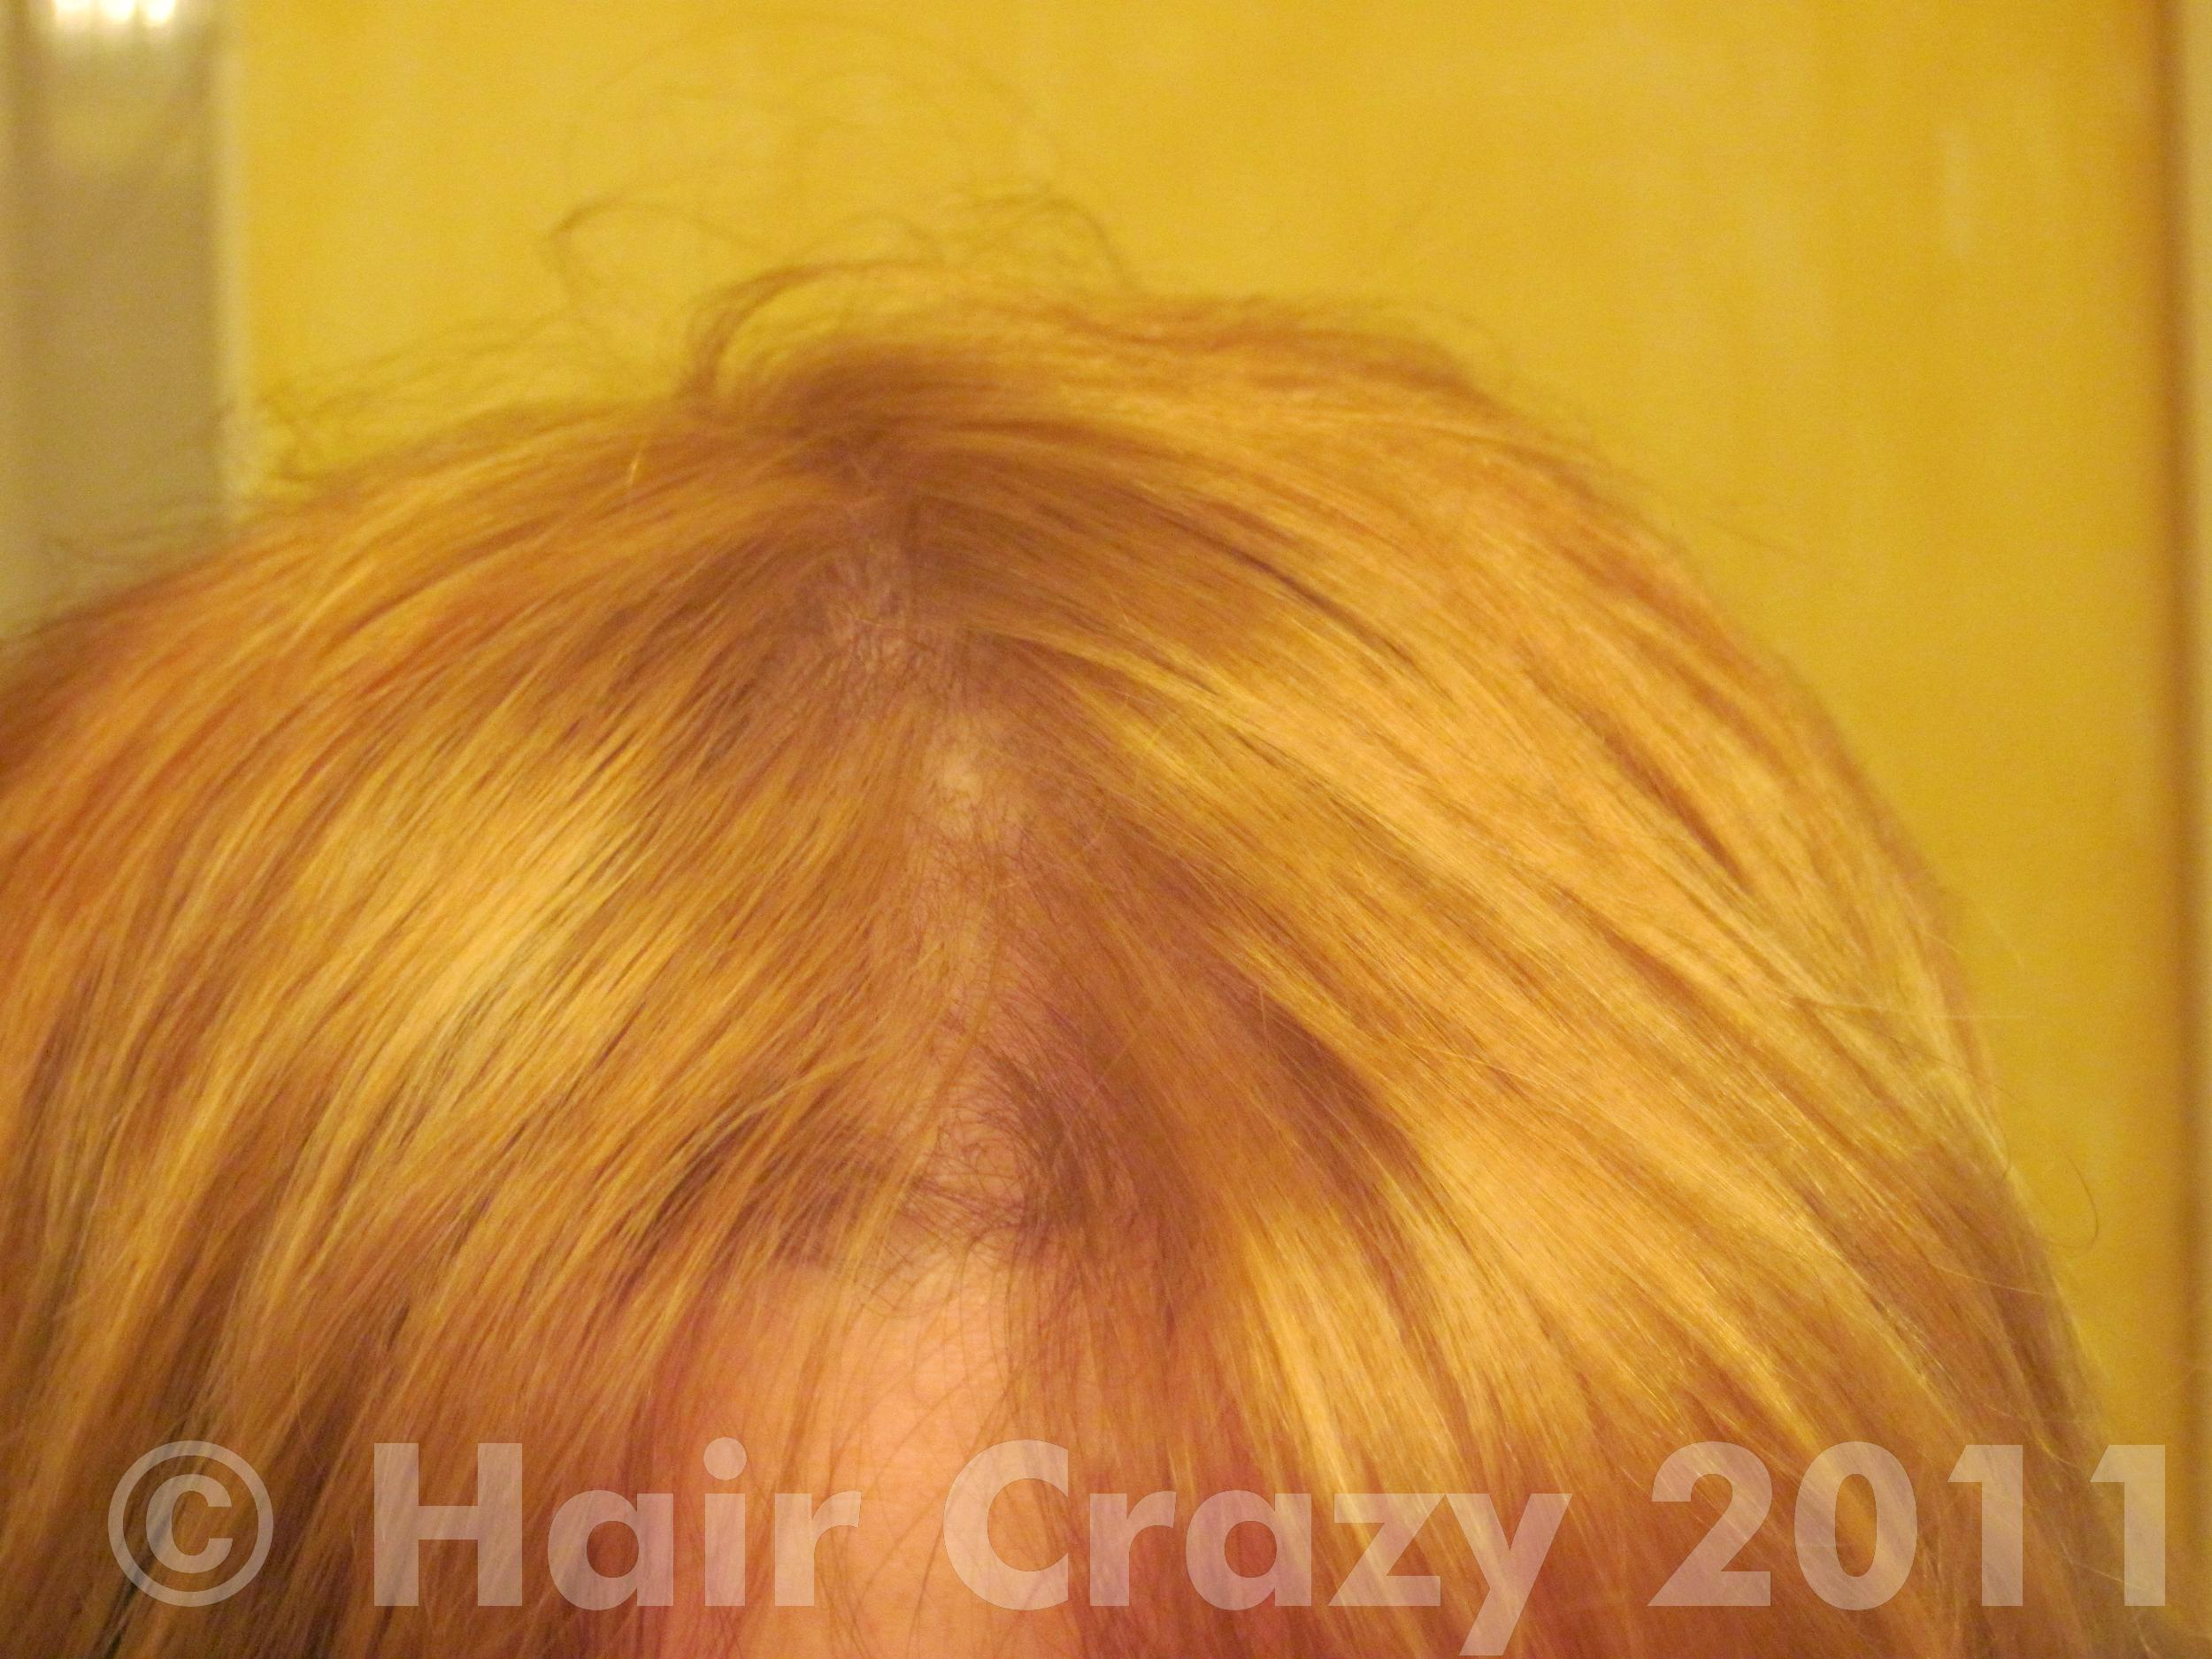 Bleached hair need help with toner forums haircrazy this is my hair after several bleaches i was using one of those little packets urmus Choice Image